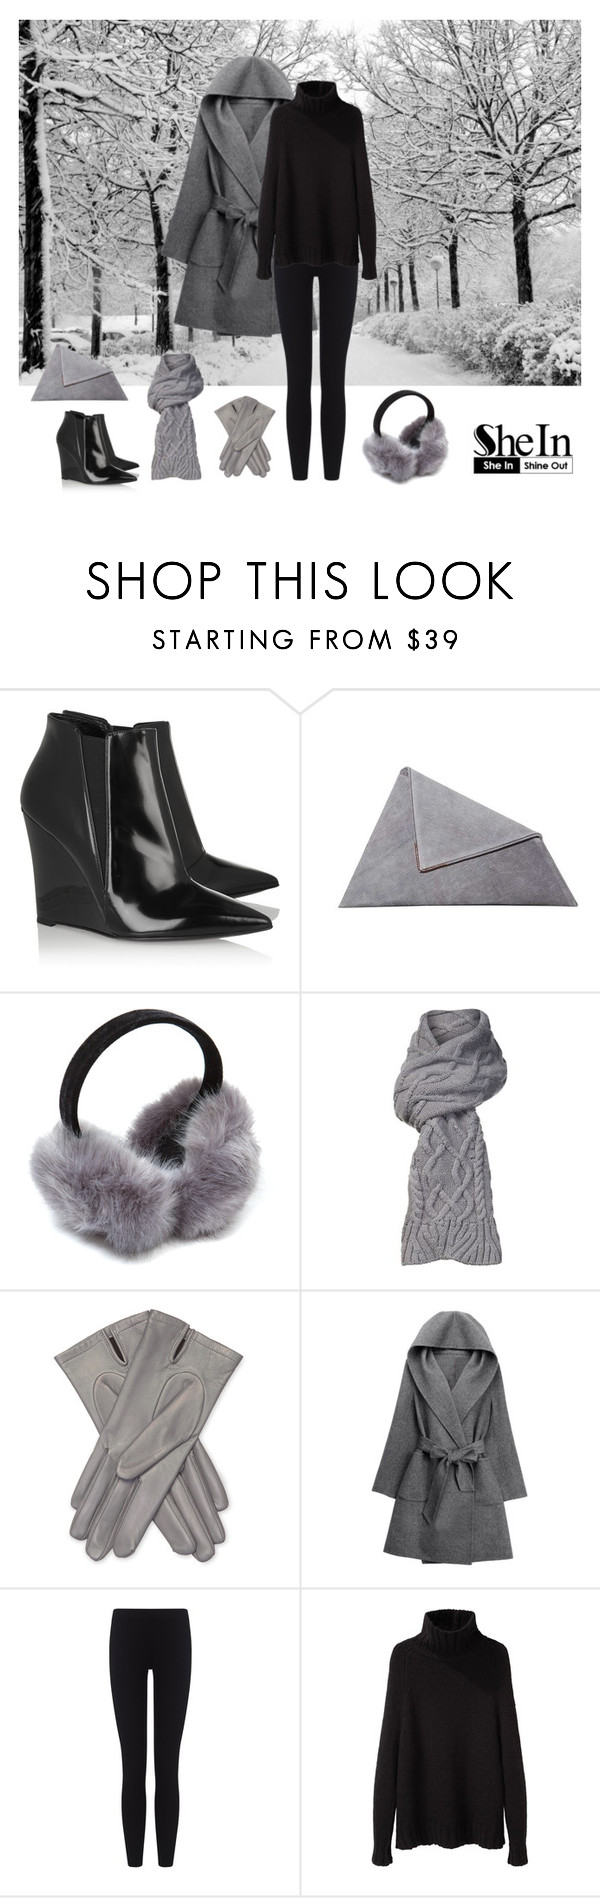 """""""Grey Hooded Tie-waist Casual Coat"""" by dezaval ❤ liked on Polyvore featuring Burberry, UGG, Maison Fabre, WithChic, James Perse and La Garçonne Moderne"""